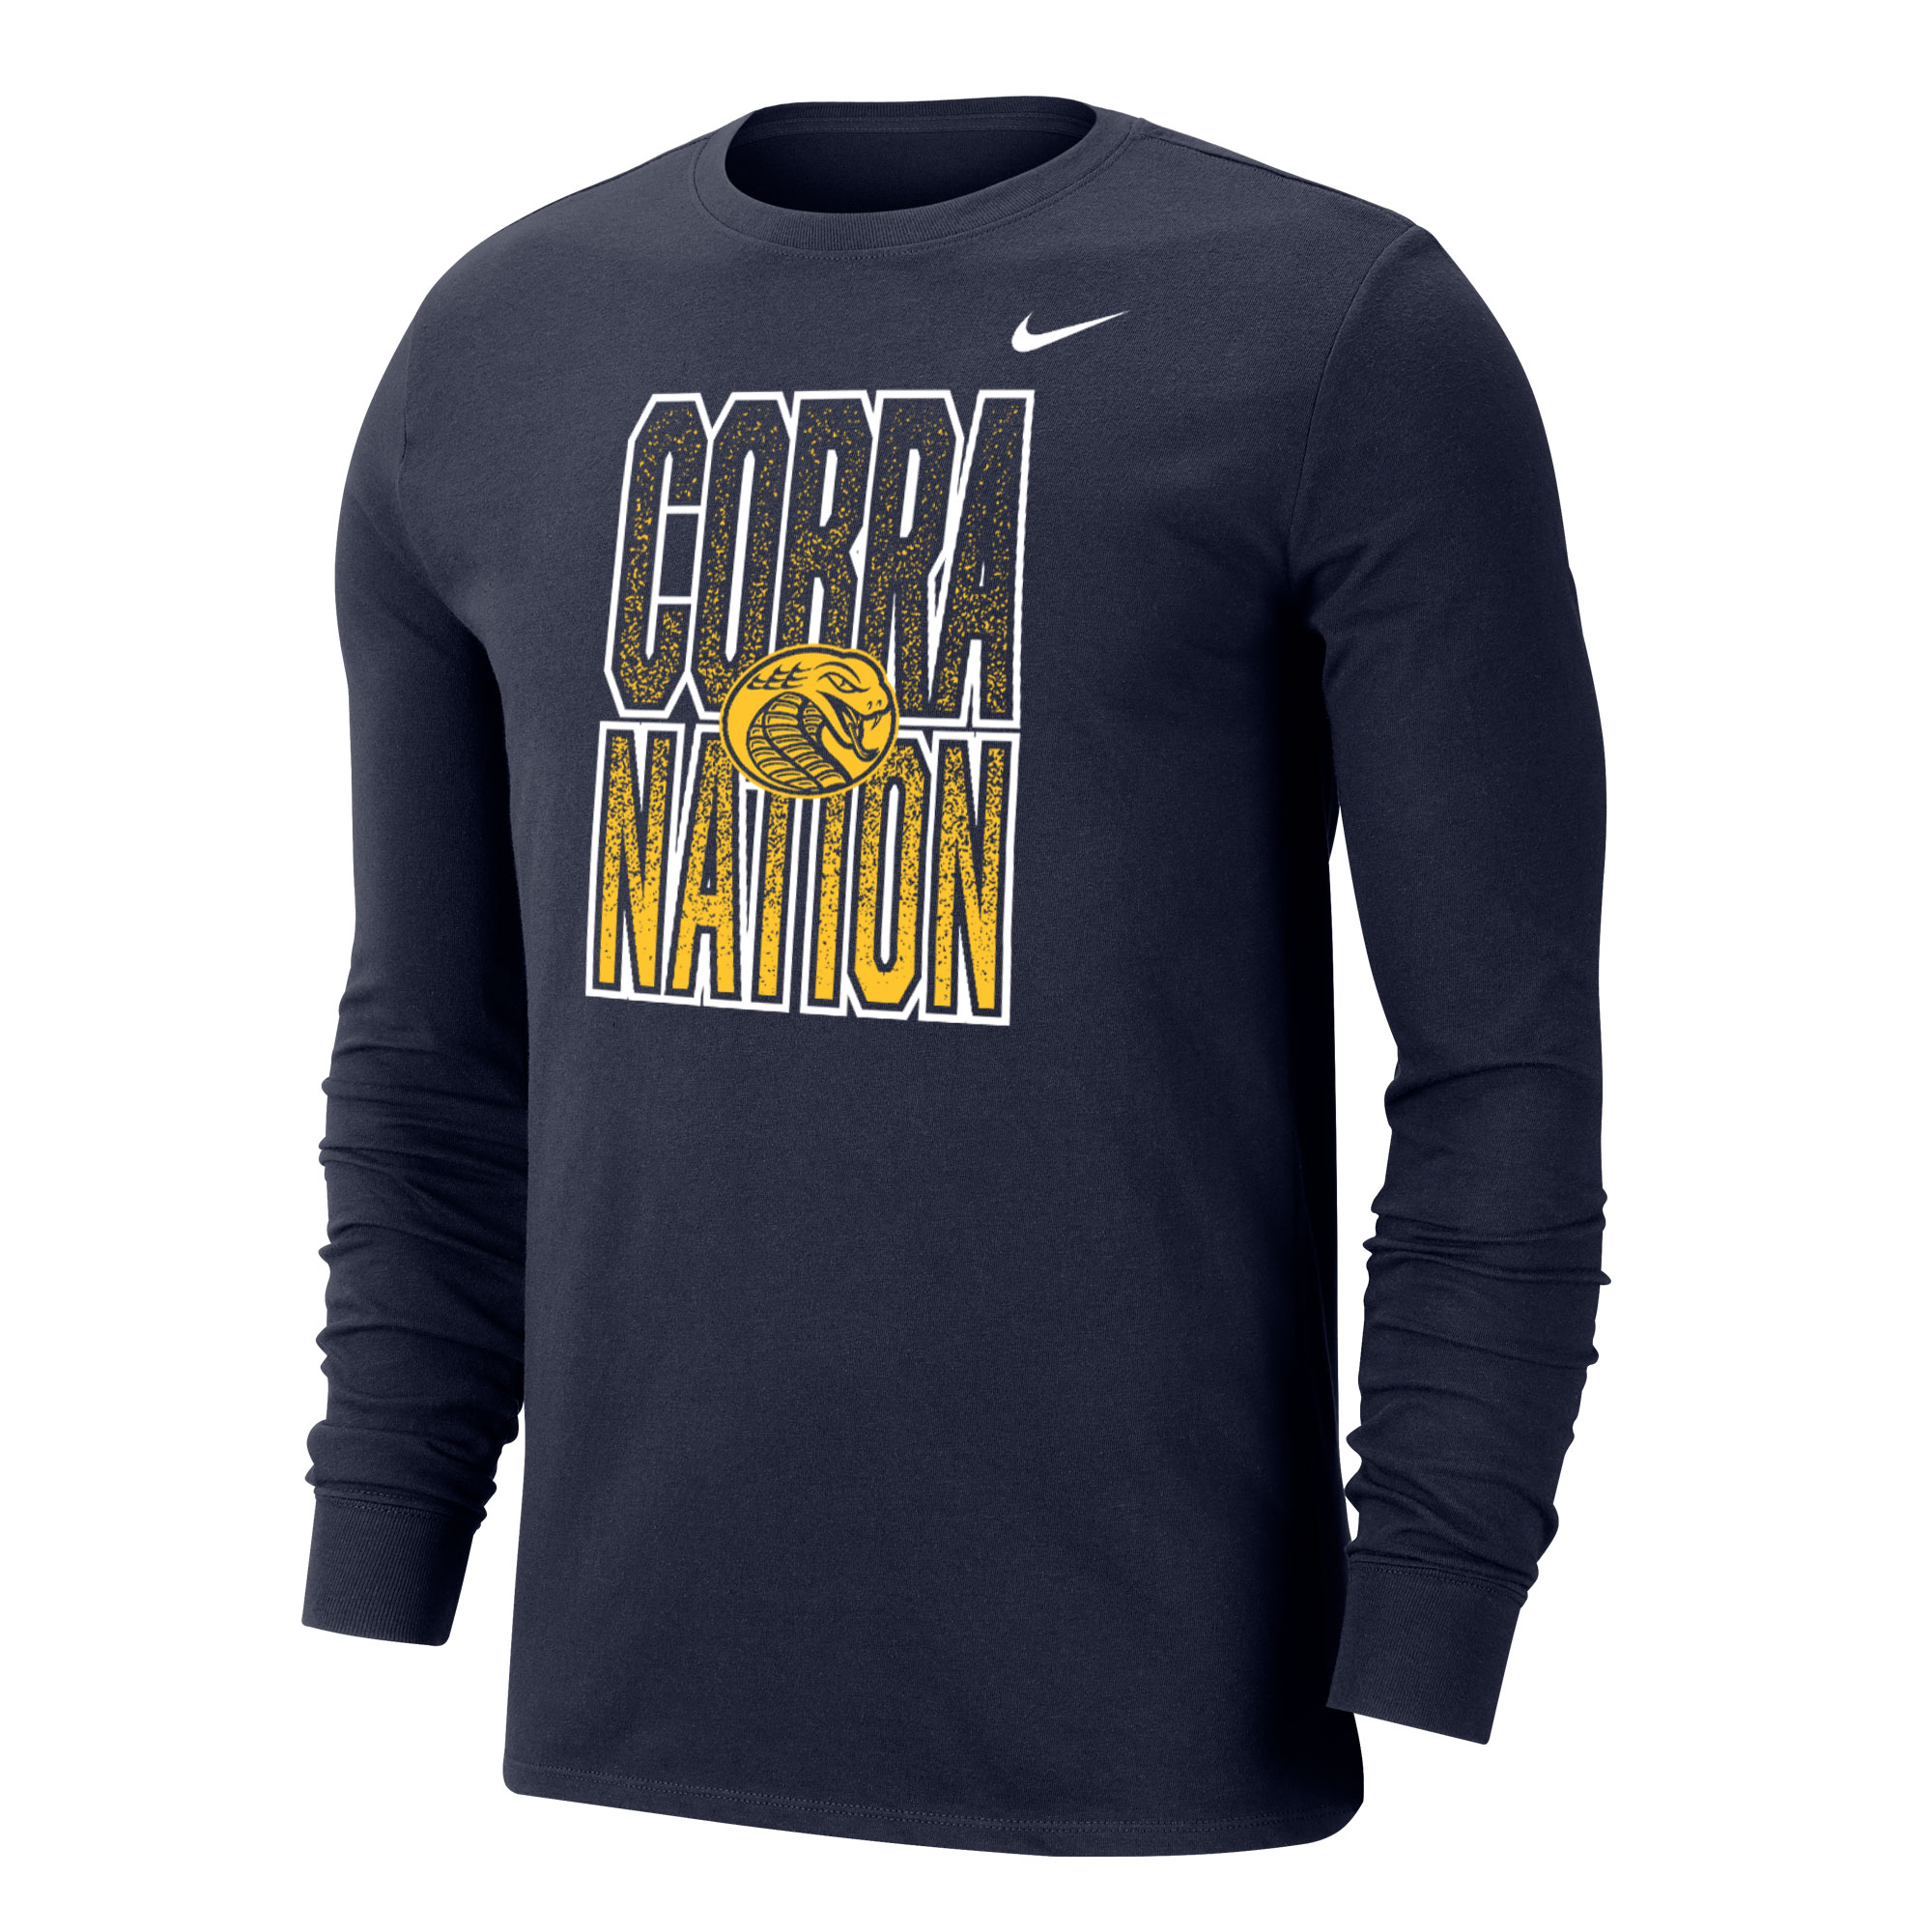 Cover Image For Clearance Shirt Long Sleeve COBRA NATION DRIFIT